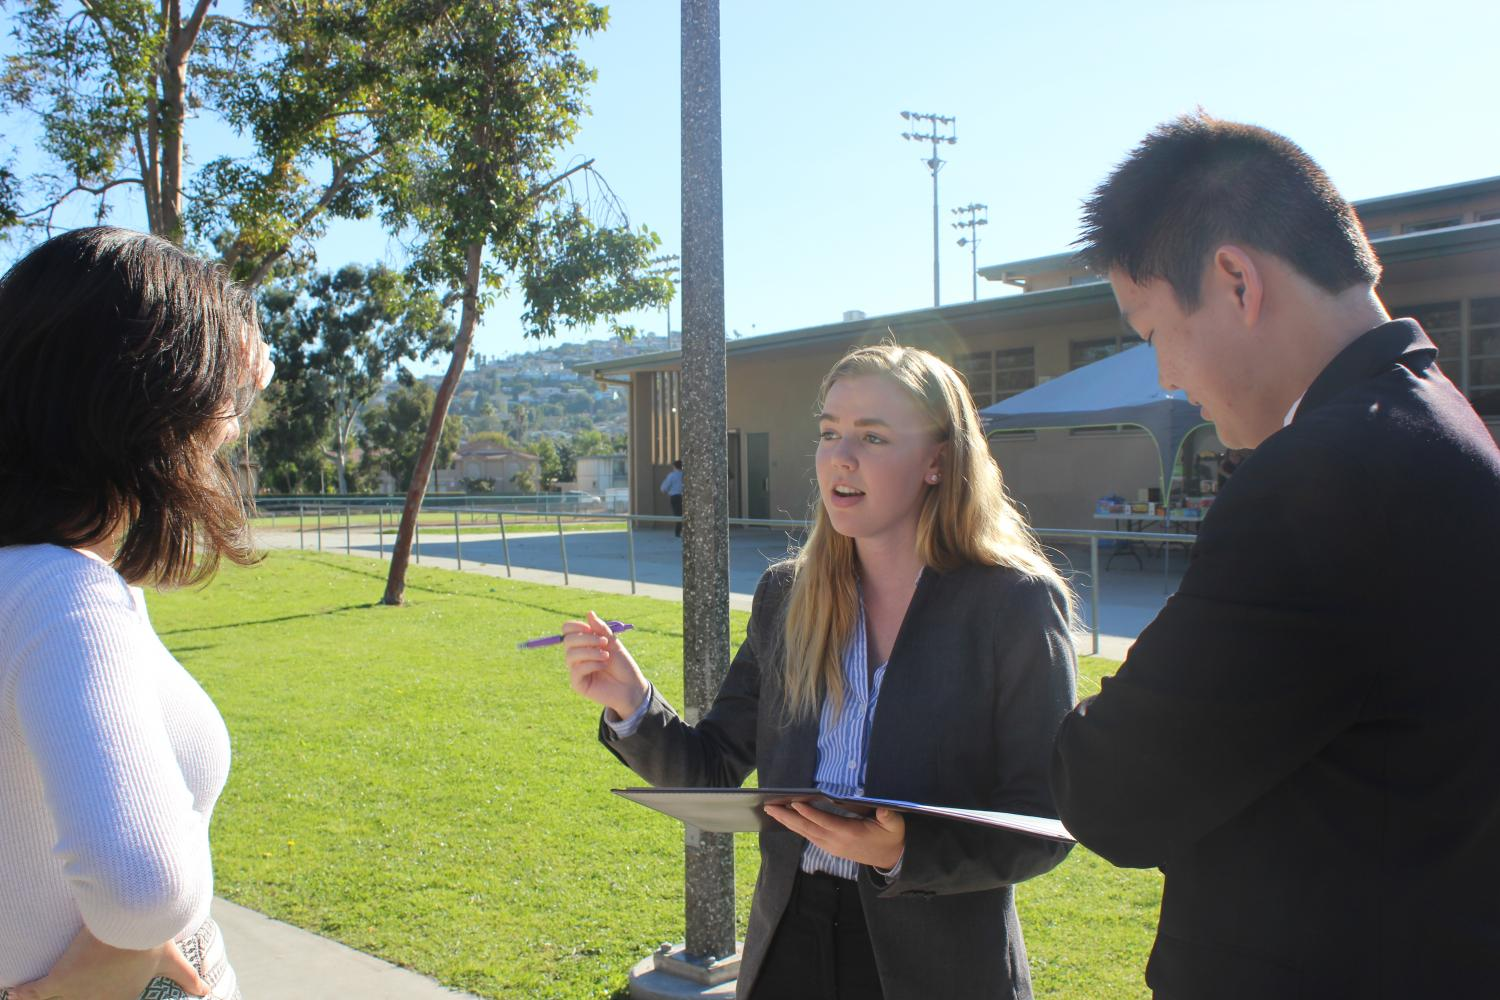 Senior Sarah Morgan practices her speech to Senior Tara Yazdan Panah and Junior Joshua Tran.